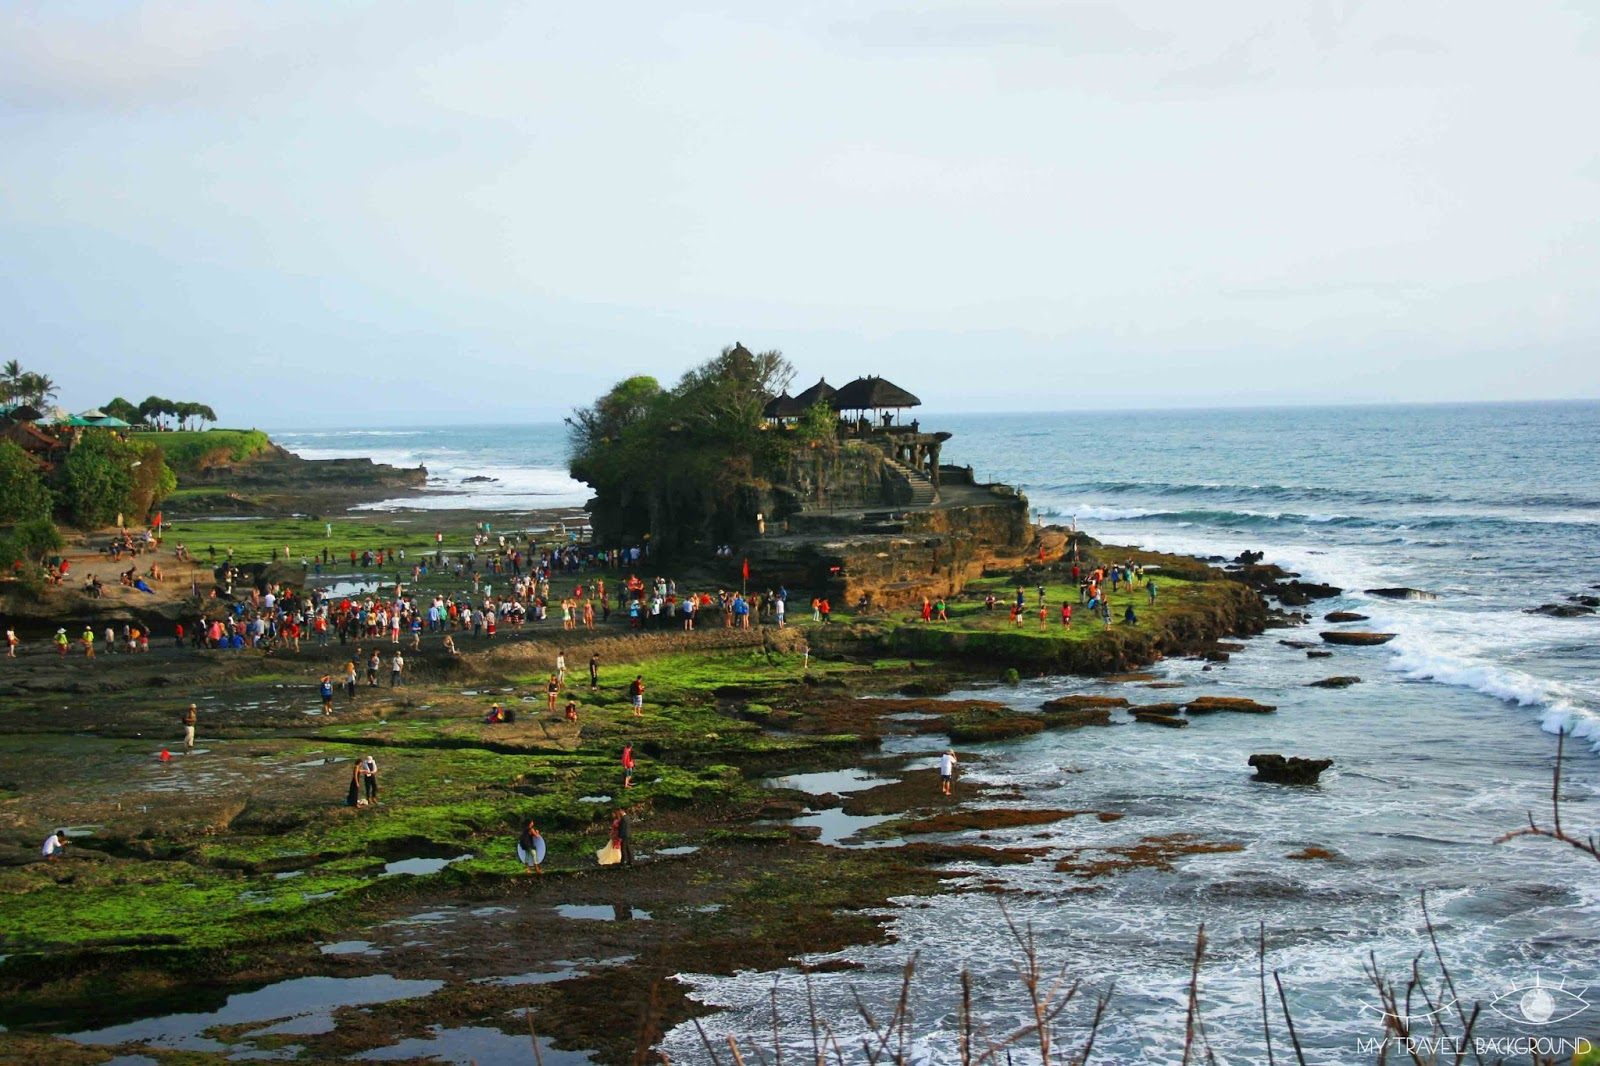 My Travel Background : A la découverte de Kuta et du Sud de Bali - Tanah Lot